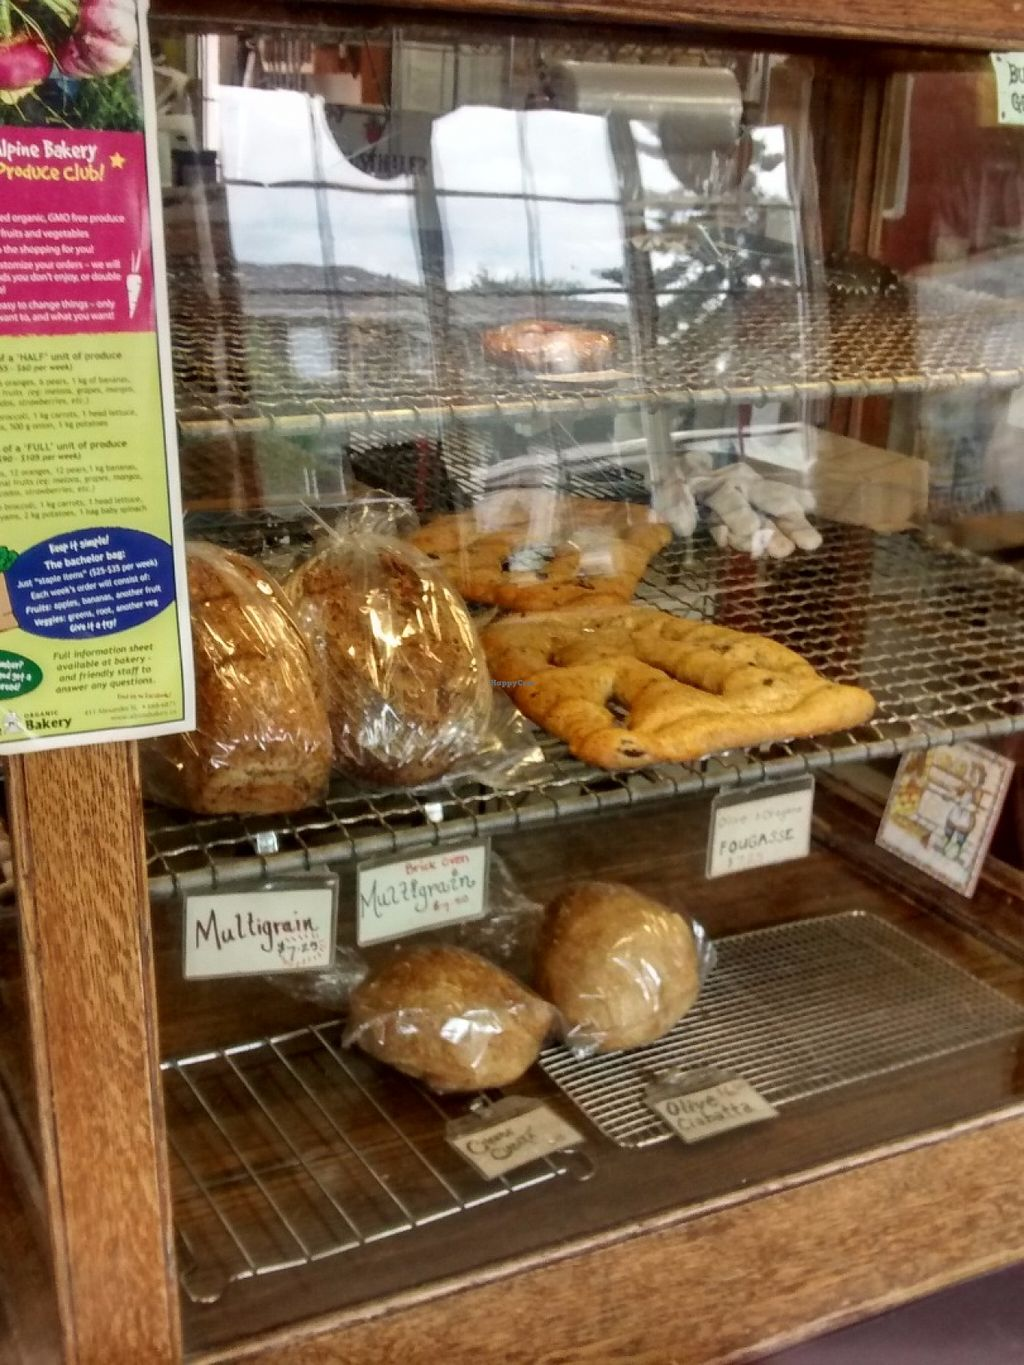 """Photo of Alpine Bakery  by <a href=""""/members/profile/QuothTheRaven"""">QuothTheRaven</a> <br/>Bread <br/> June 17, 2016  - <a href='/contact/abuse/image/15475/154393'>Report</a>"""